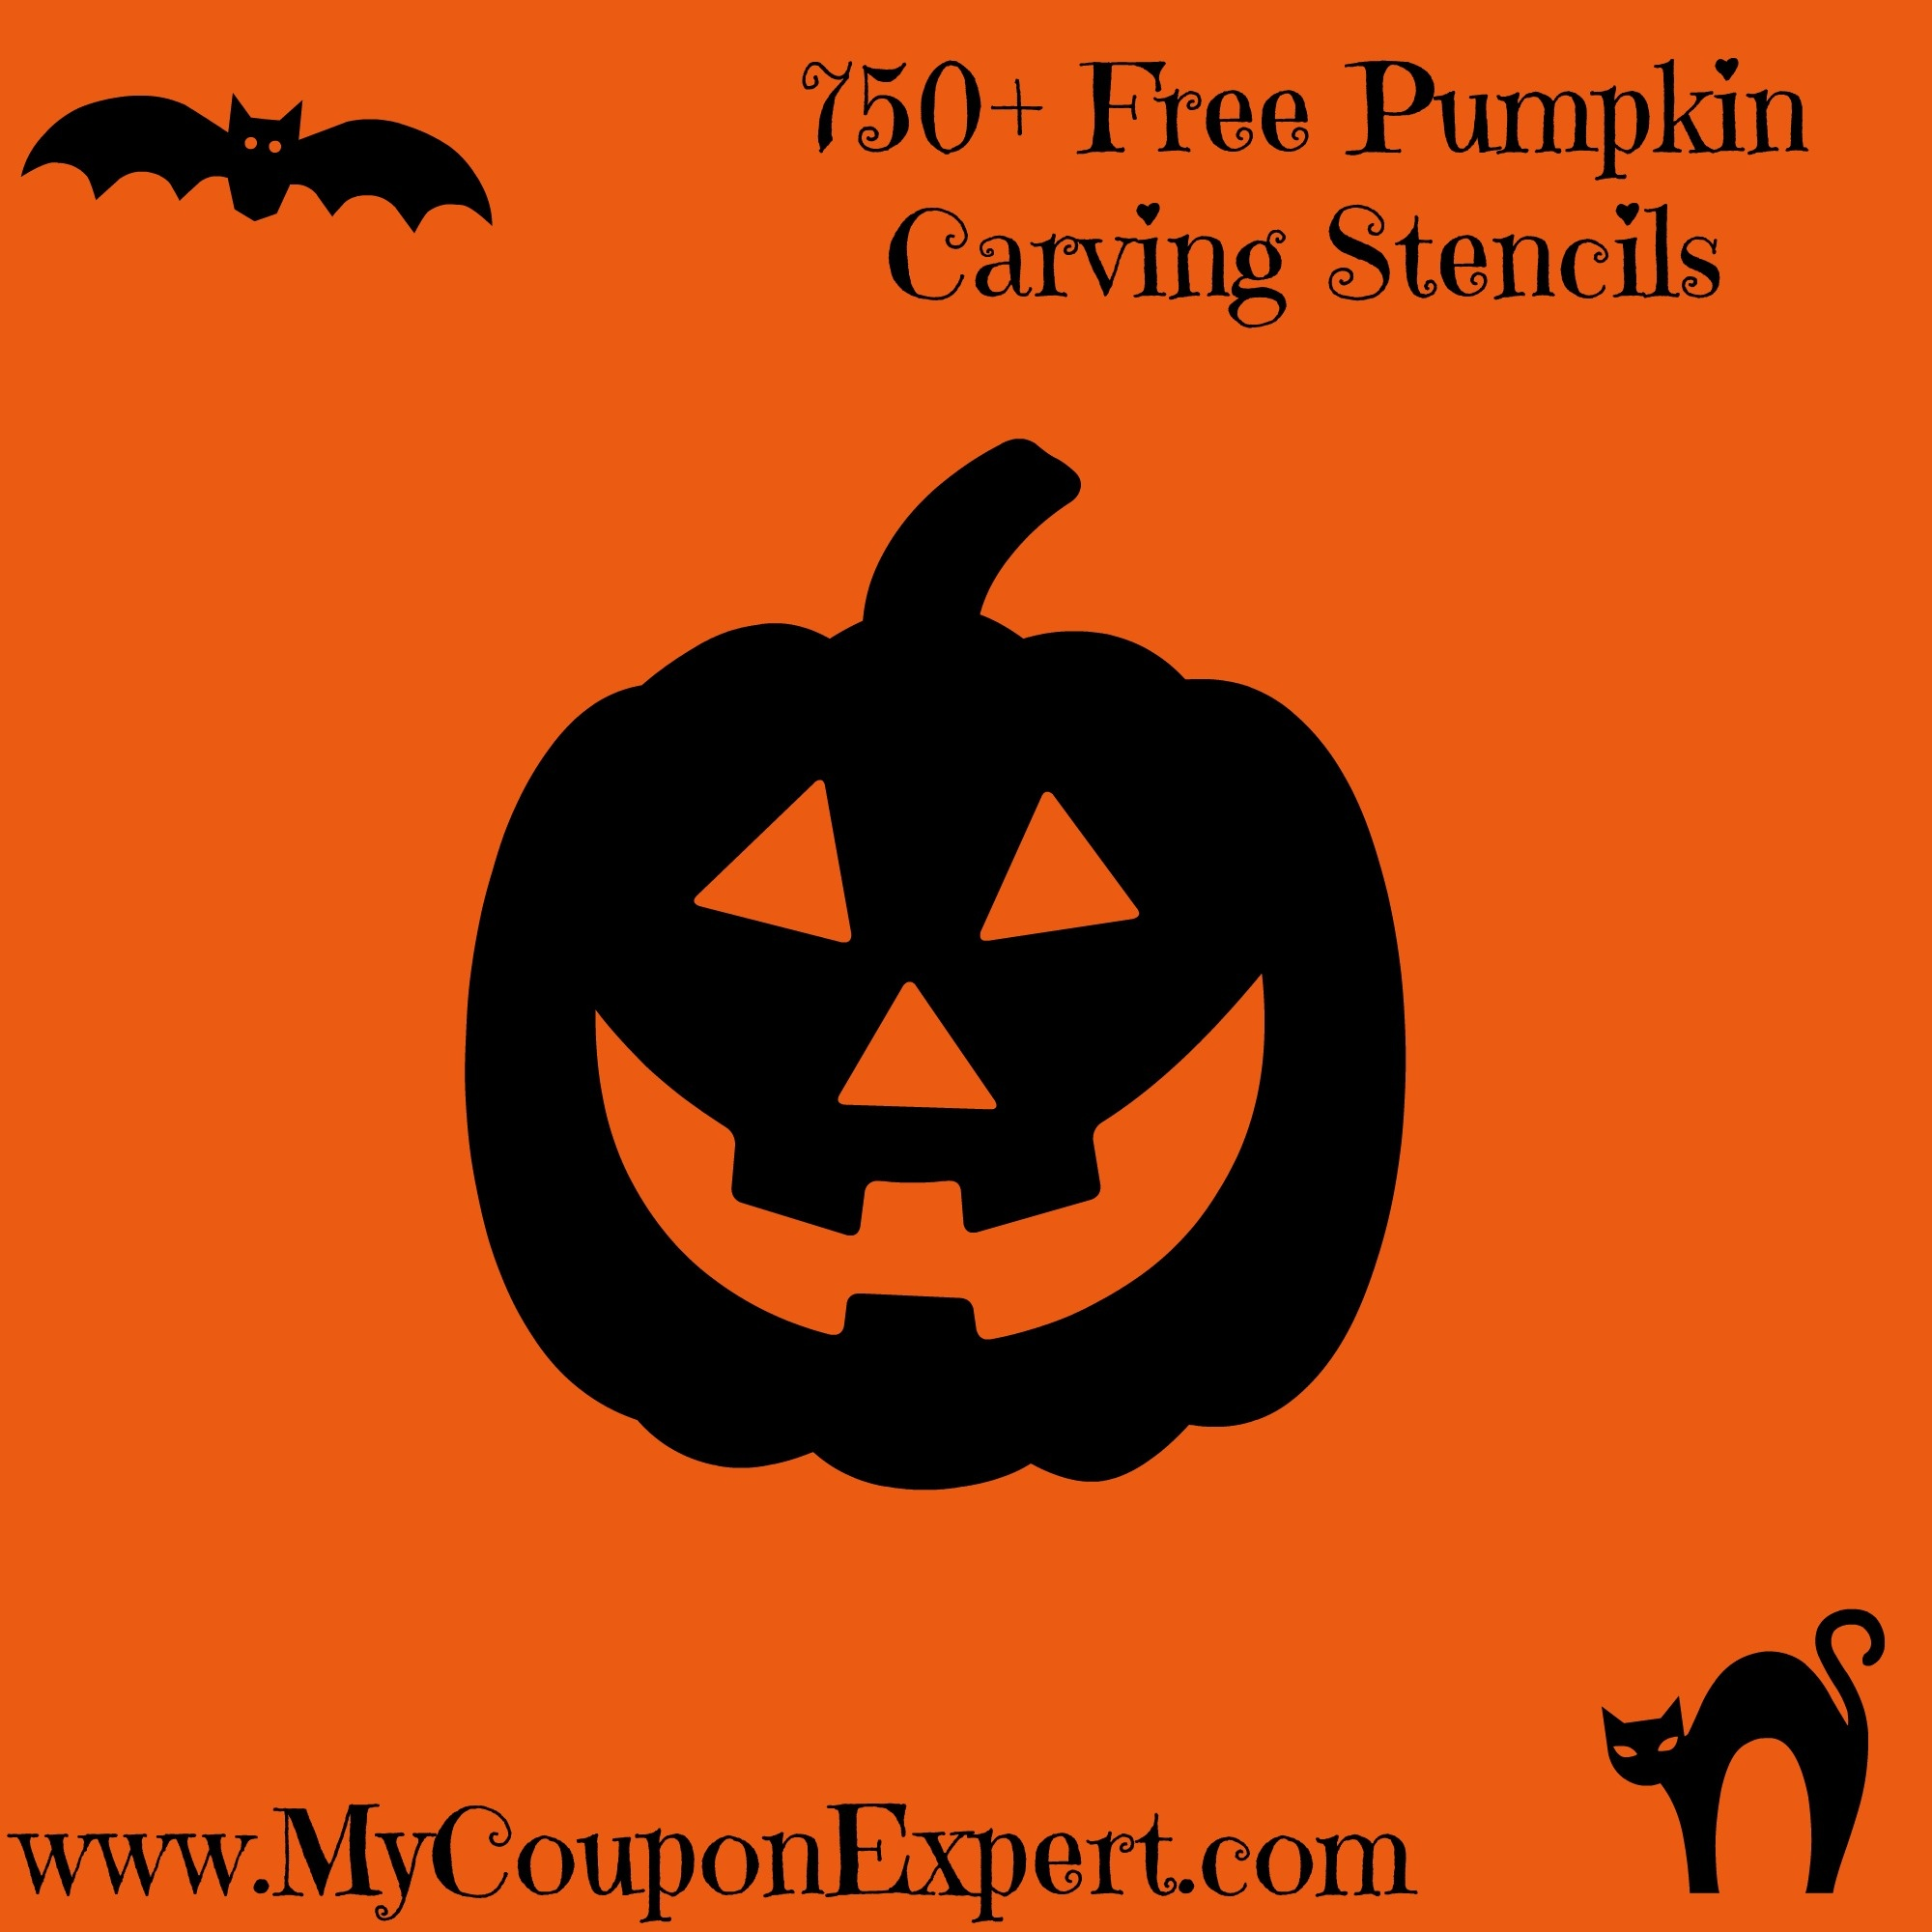 750+ Free Pumpkin Carving Stencils · - Free Printable Pumpkin Carving Stencils